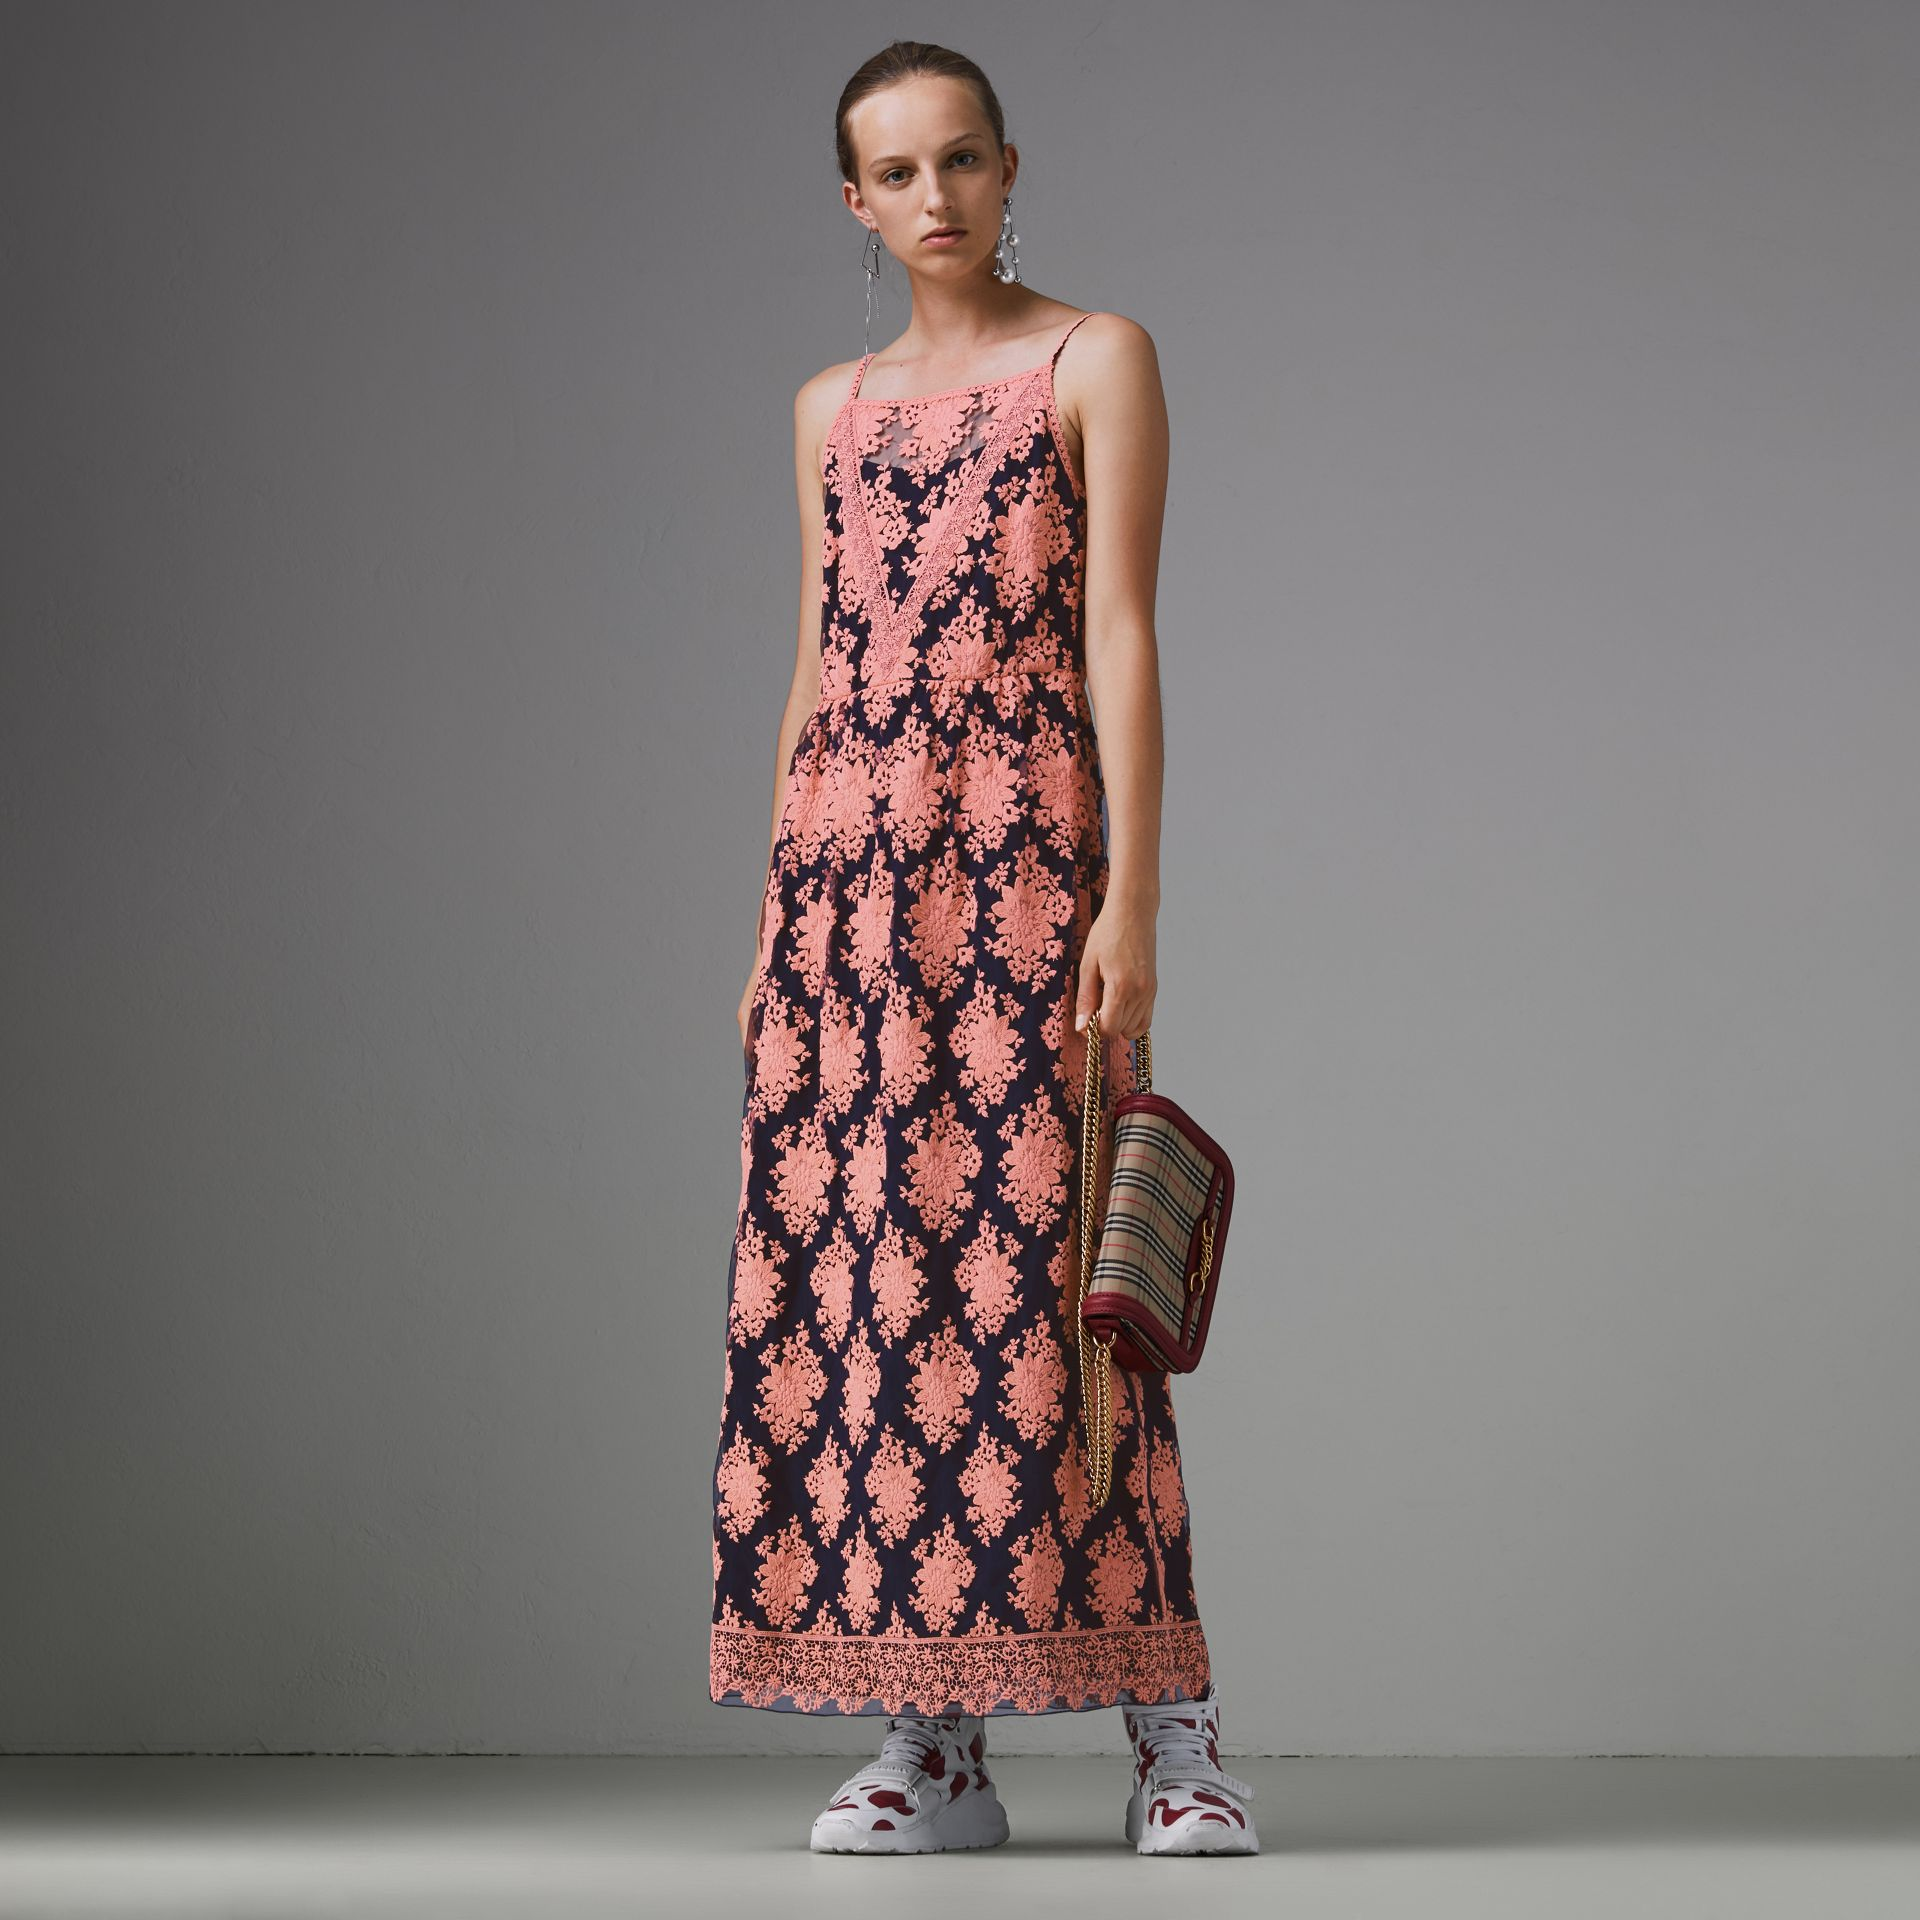 Floral-embroidered Sleeveless Dress in Rose/midnight Blue - Women | Burberry United States - gallery image 4